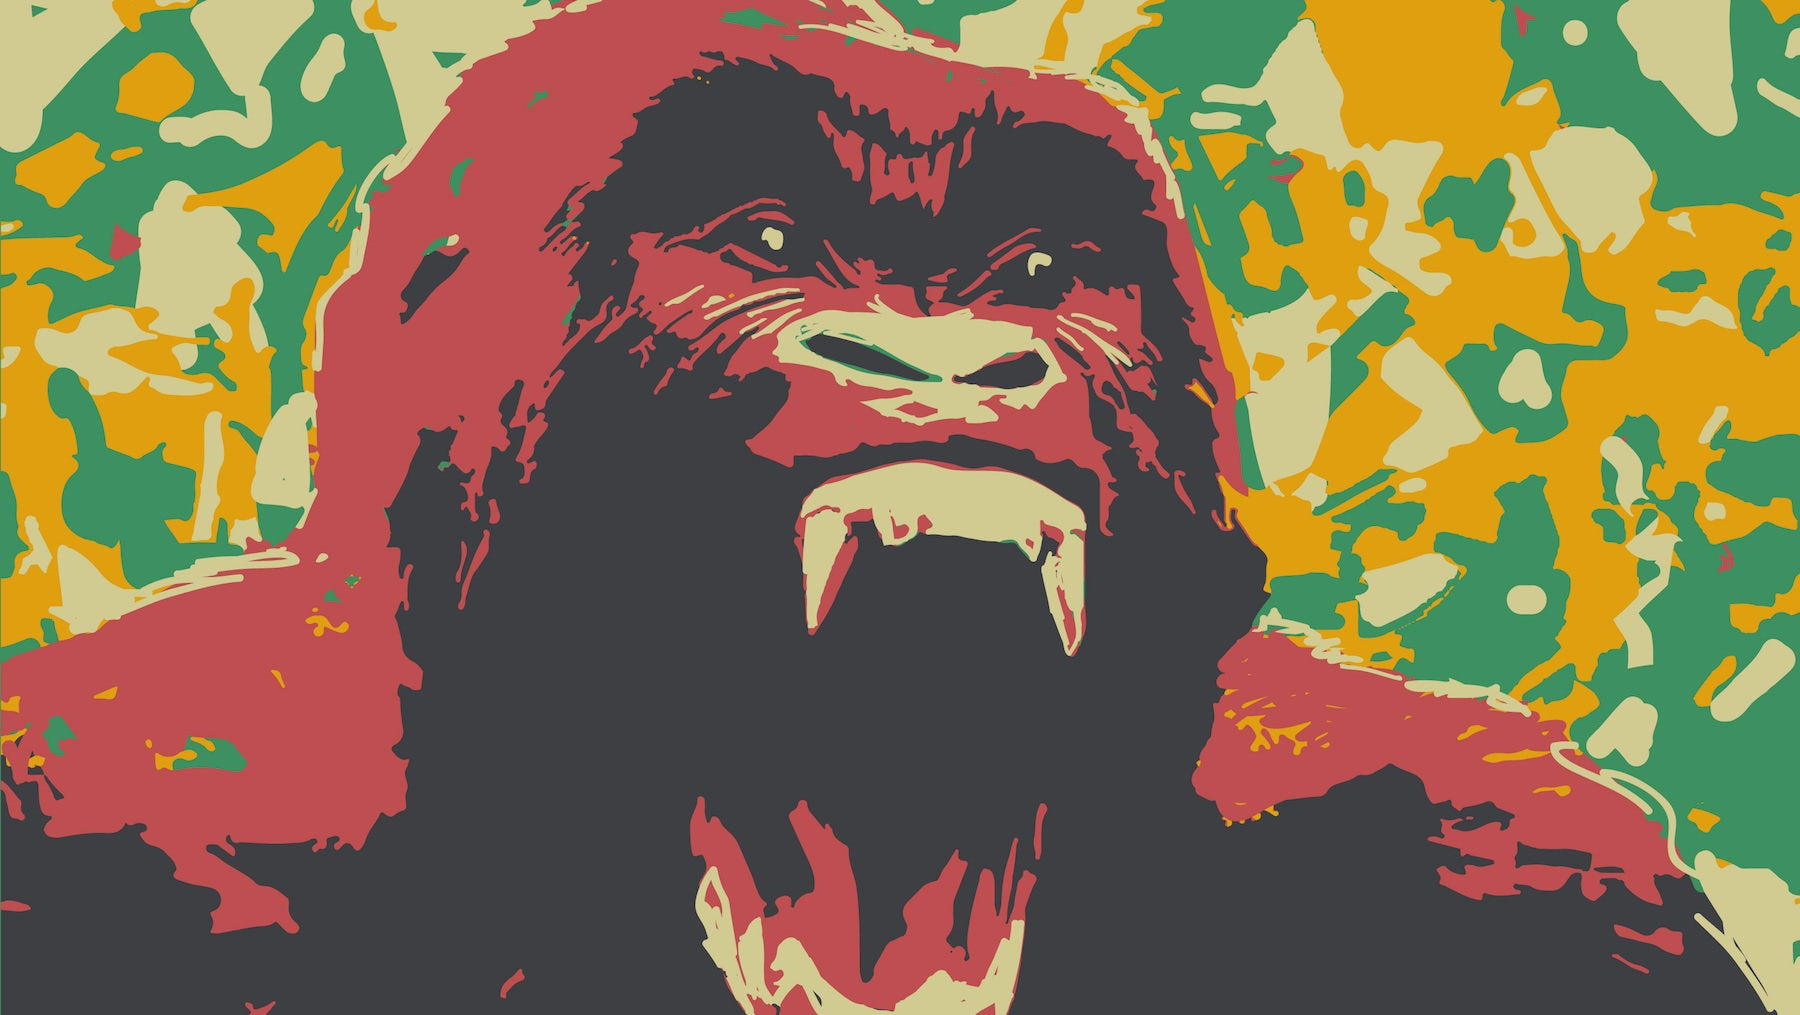 King Kong | Source: Shutterstock